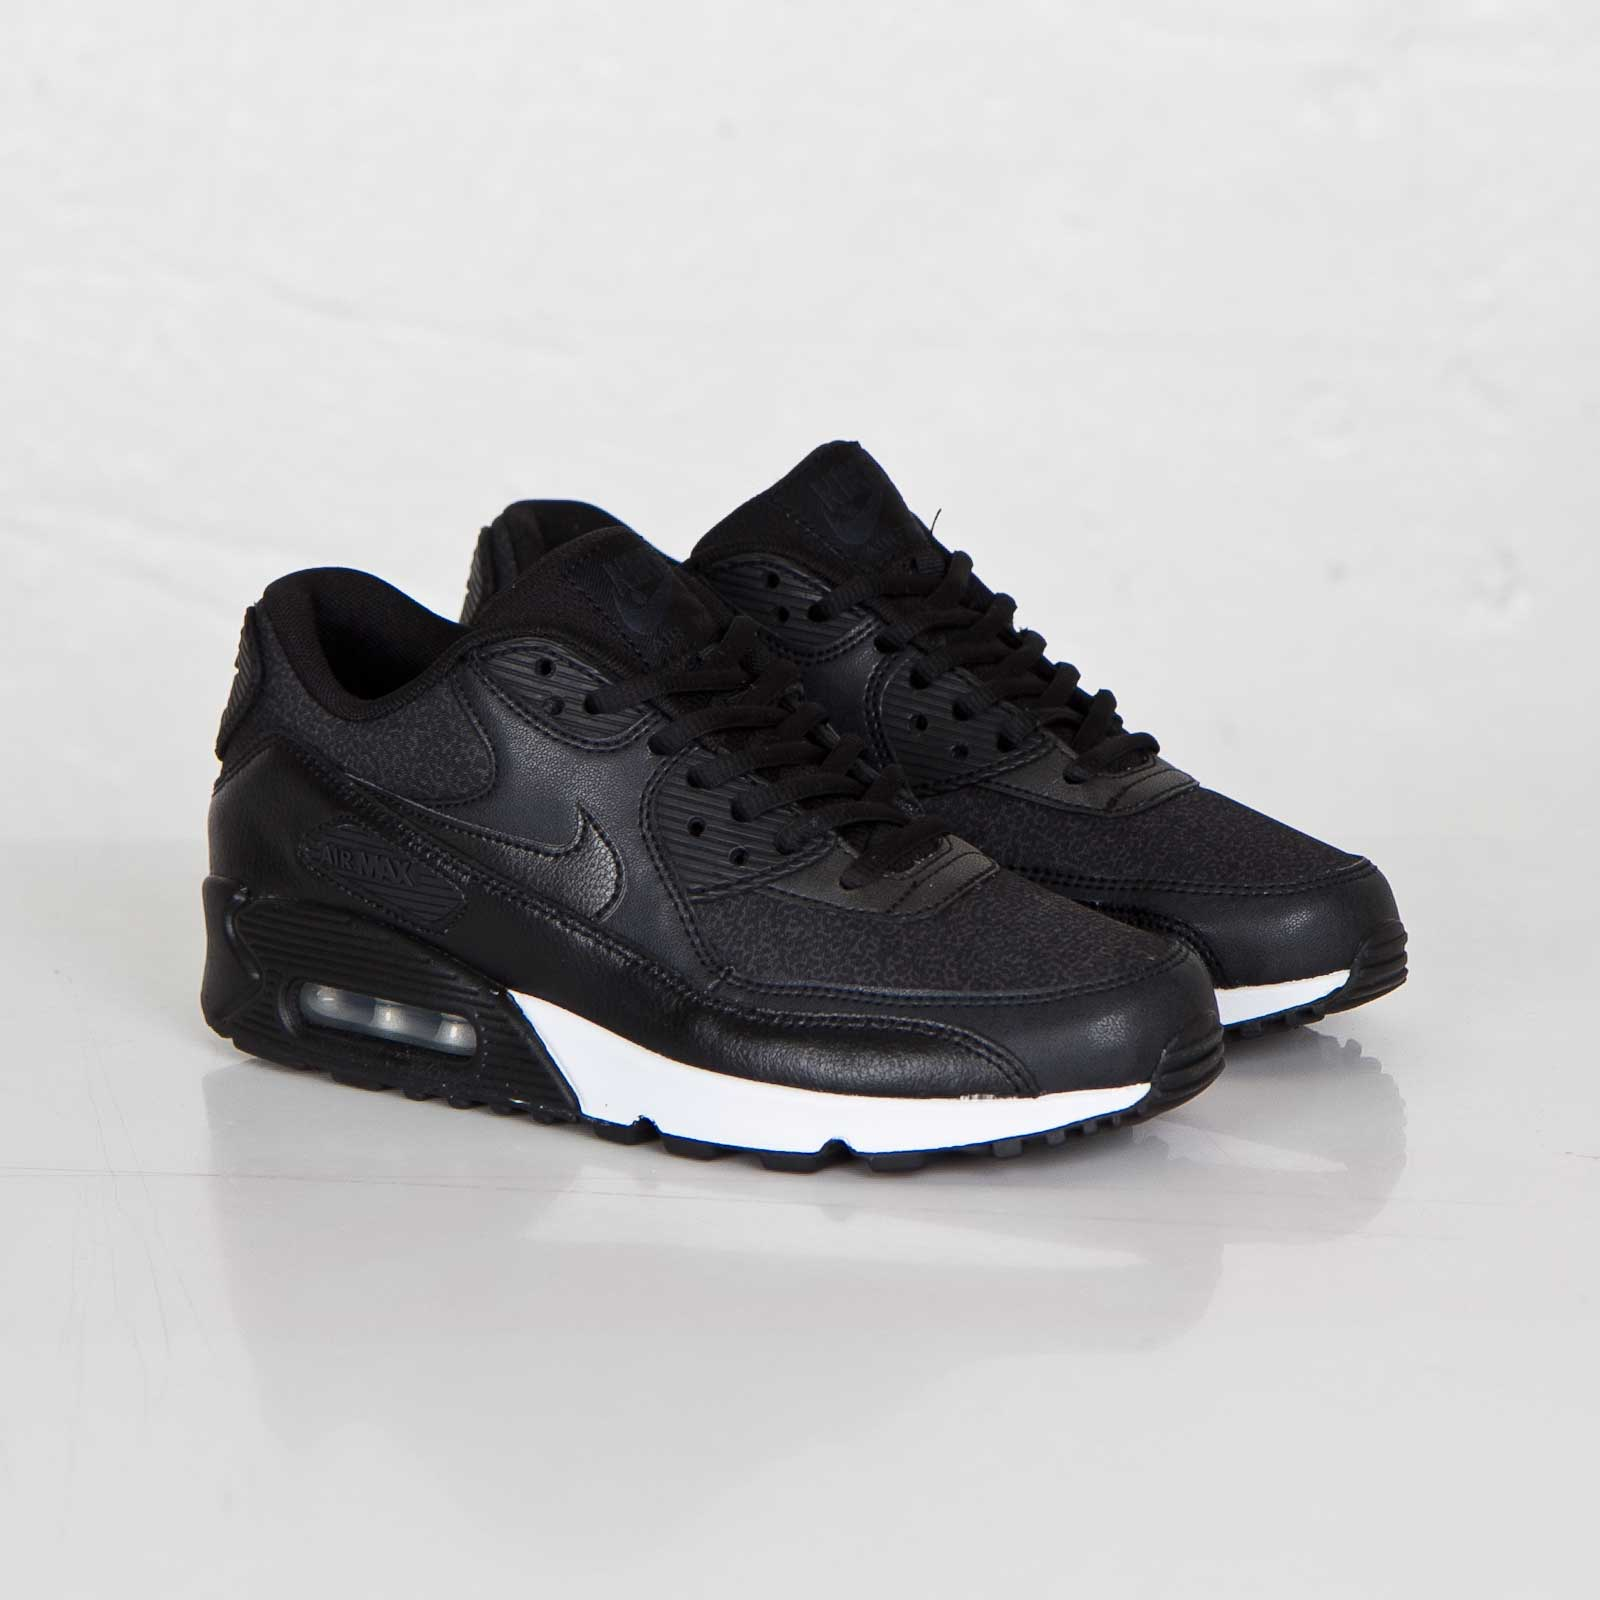 buy online 38d4c 14709 Nike Wmns Air Max 90 - 325213-033 - Sneakersnstuff ...